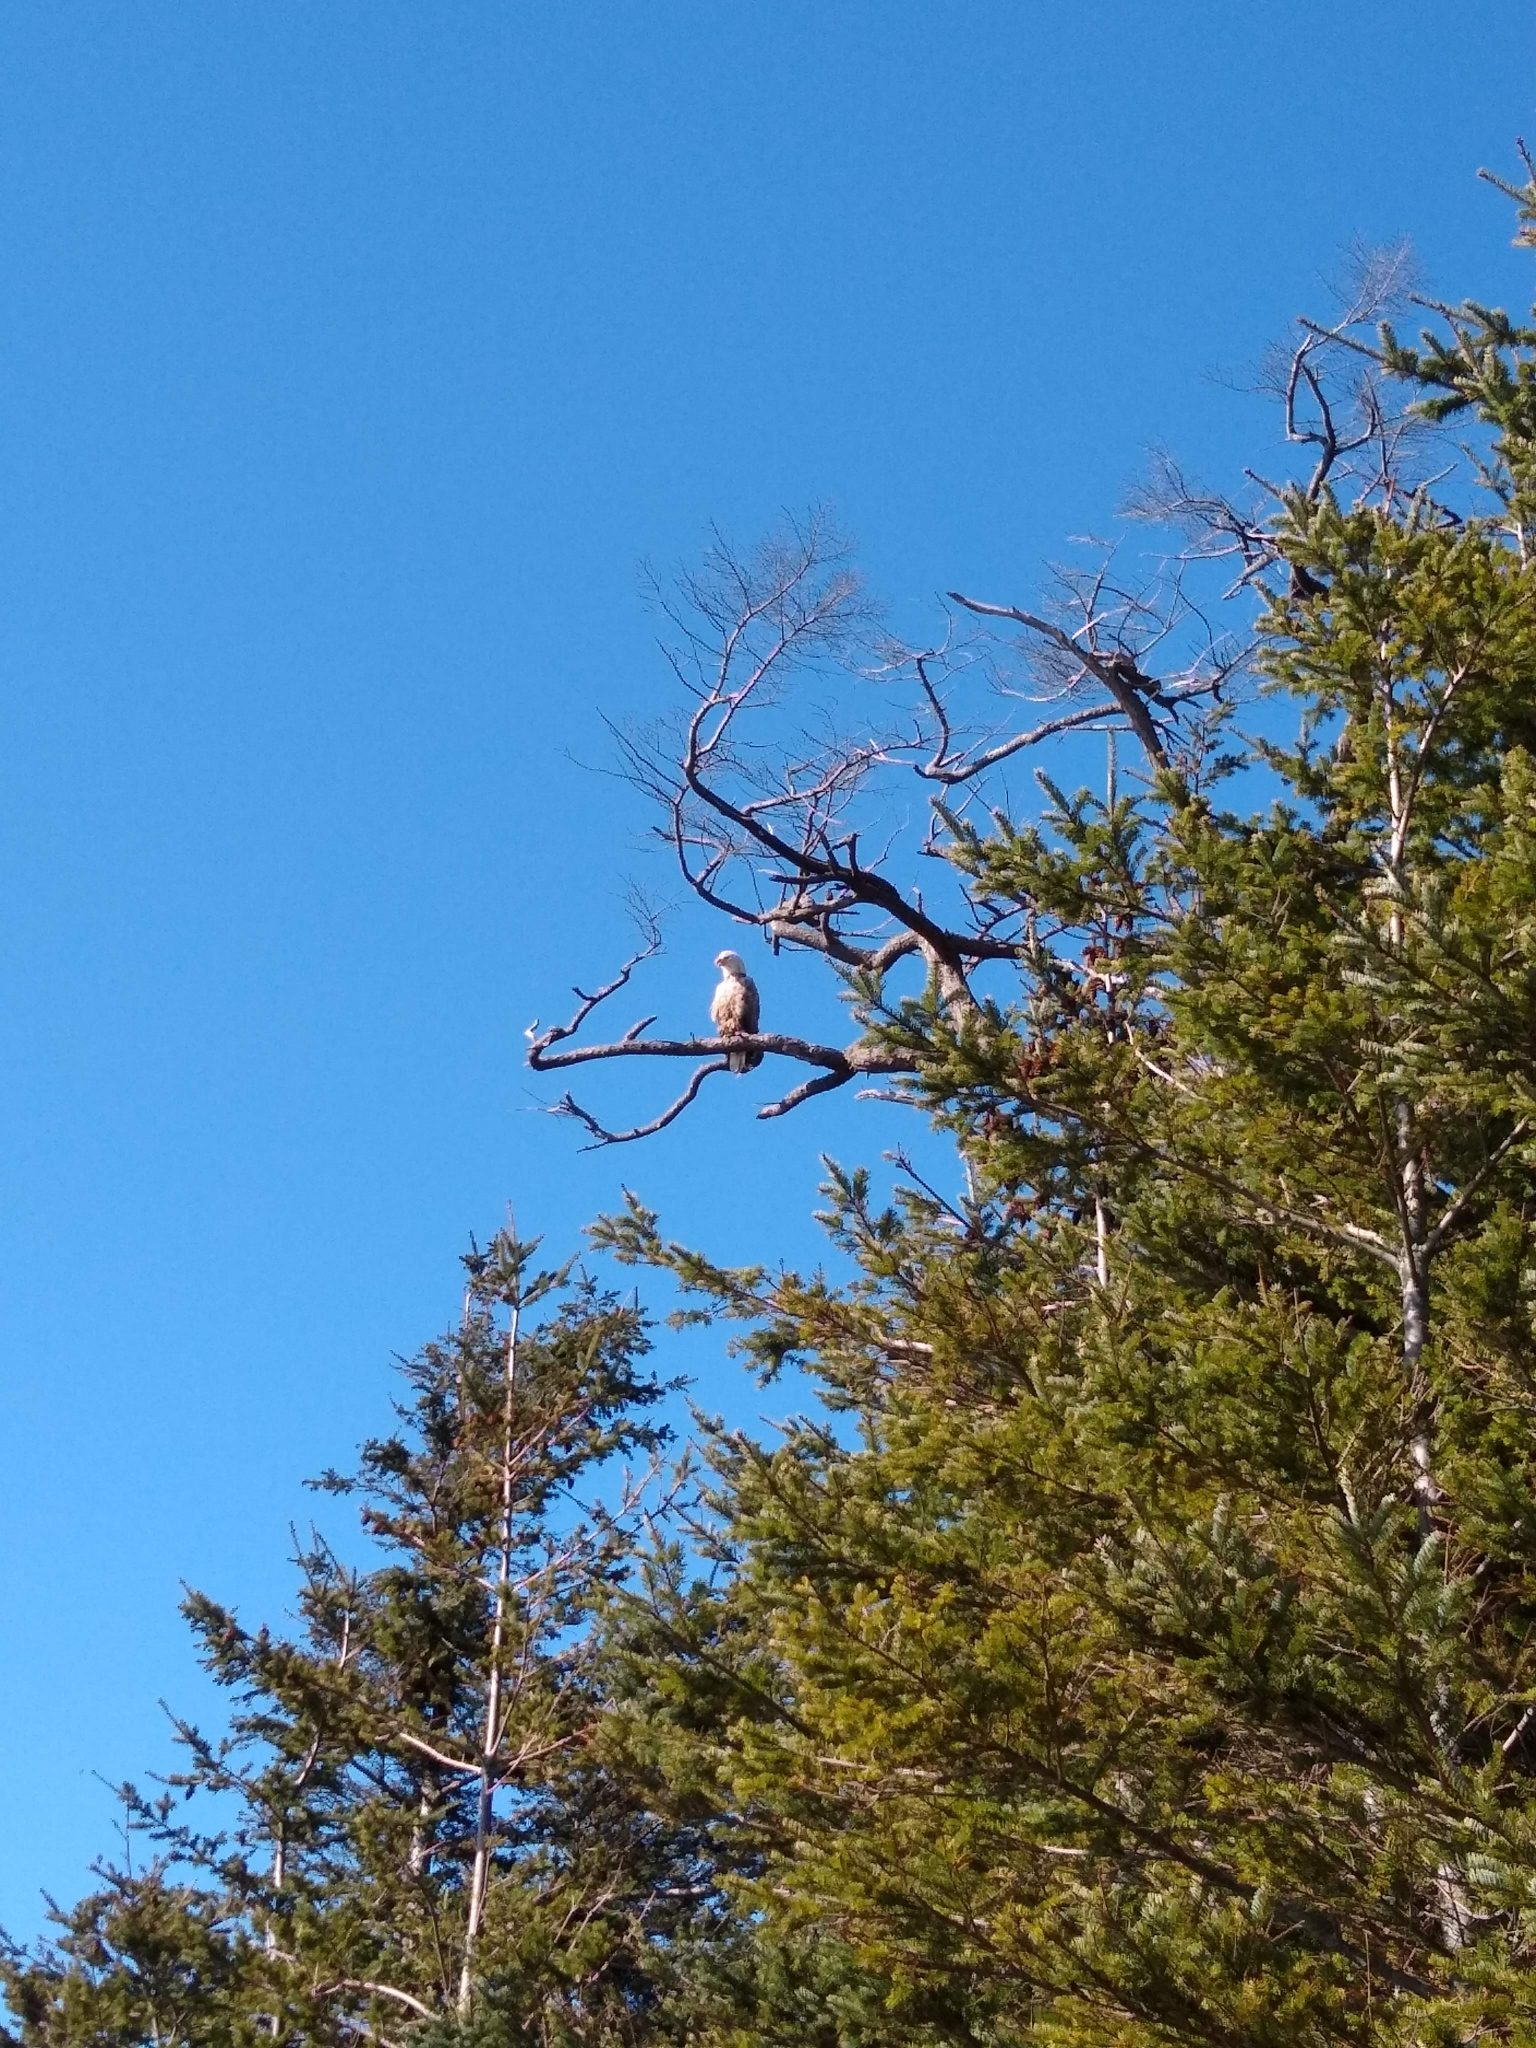 An eagle sits in a tree keeping watch against the blue sky